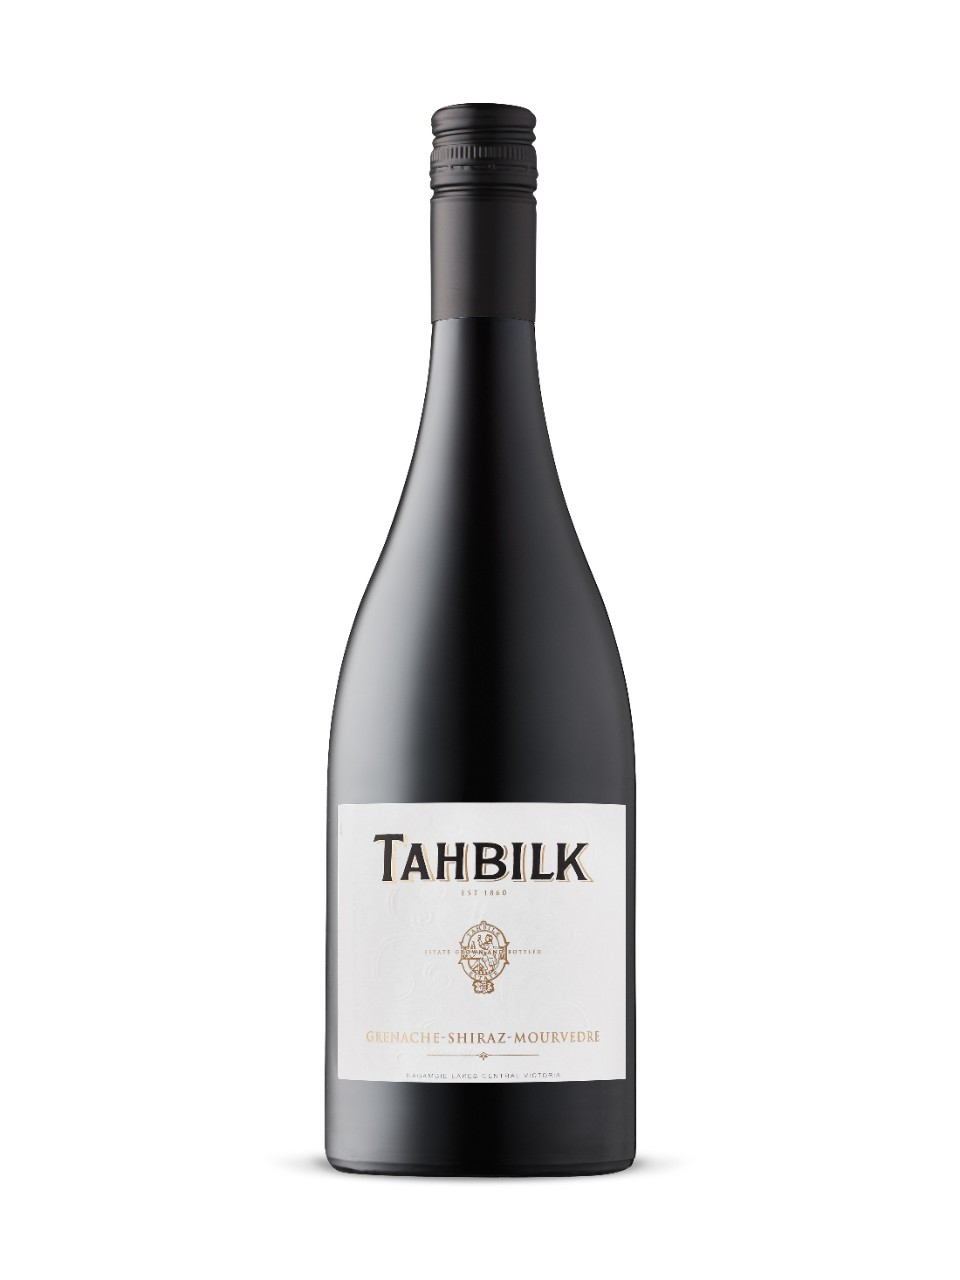 Tahbilk Grenache/Shiraz/Mourvèdre 2017 from LCBO